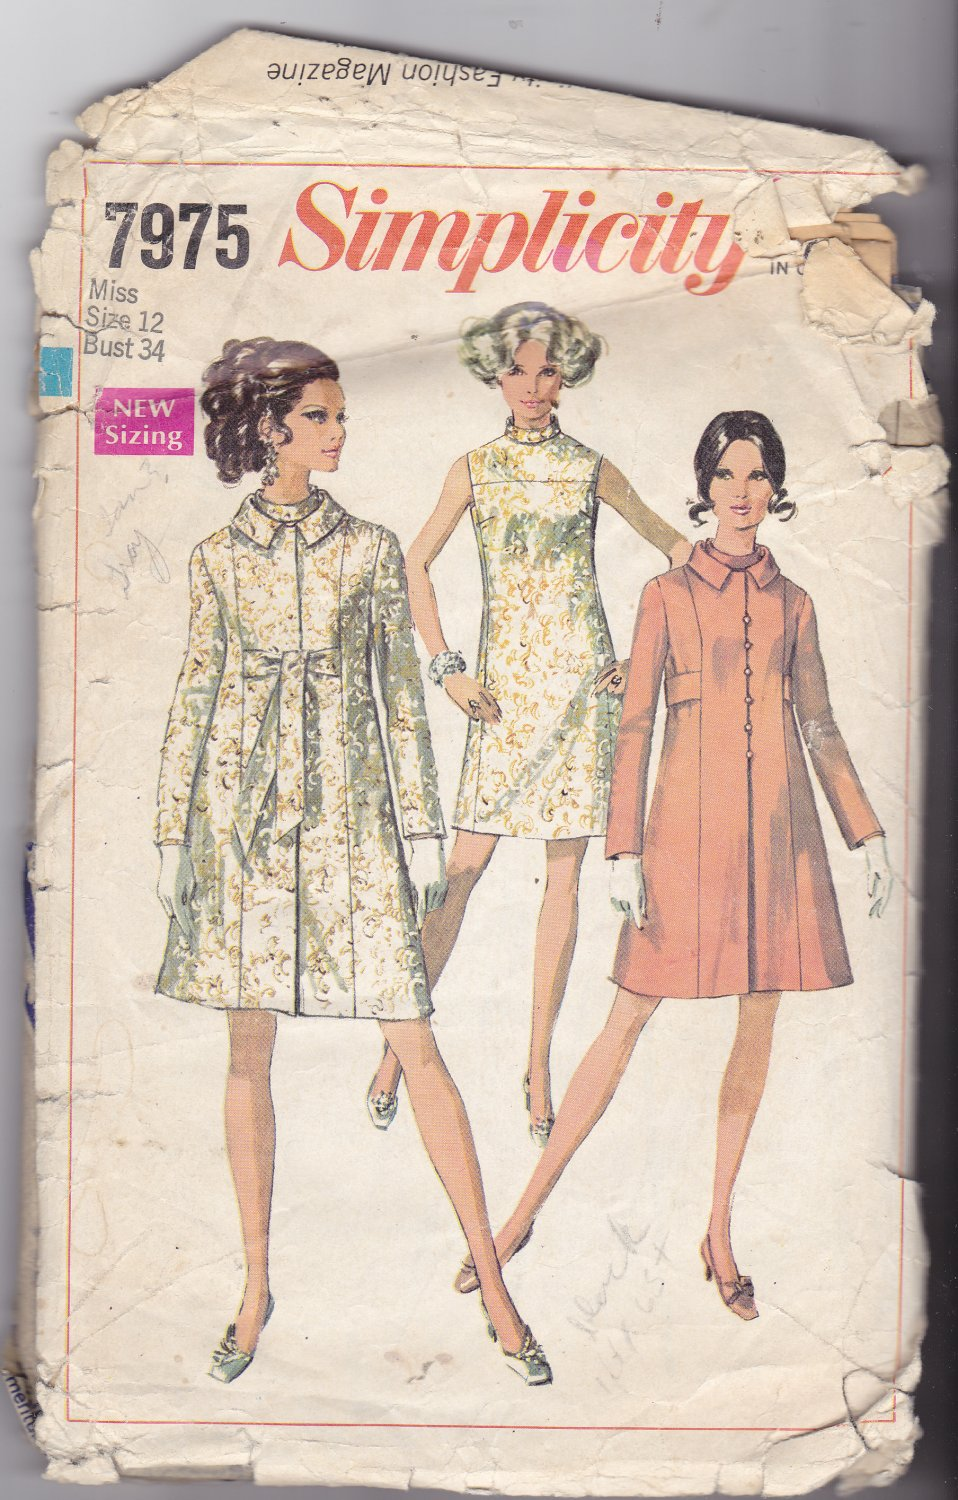 Simplicity 7975 Dress Coat 12, may be missing pieces, 50 cents plus shipping